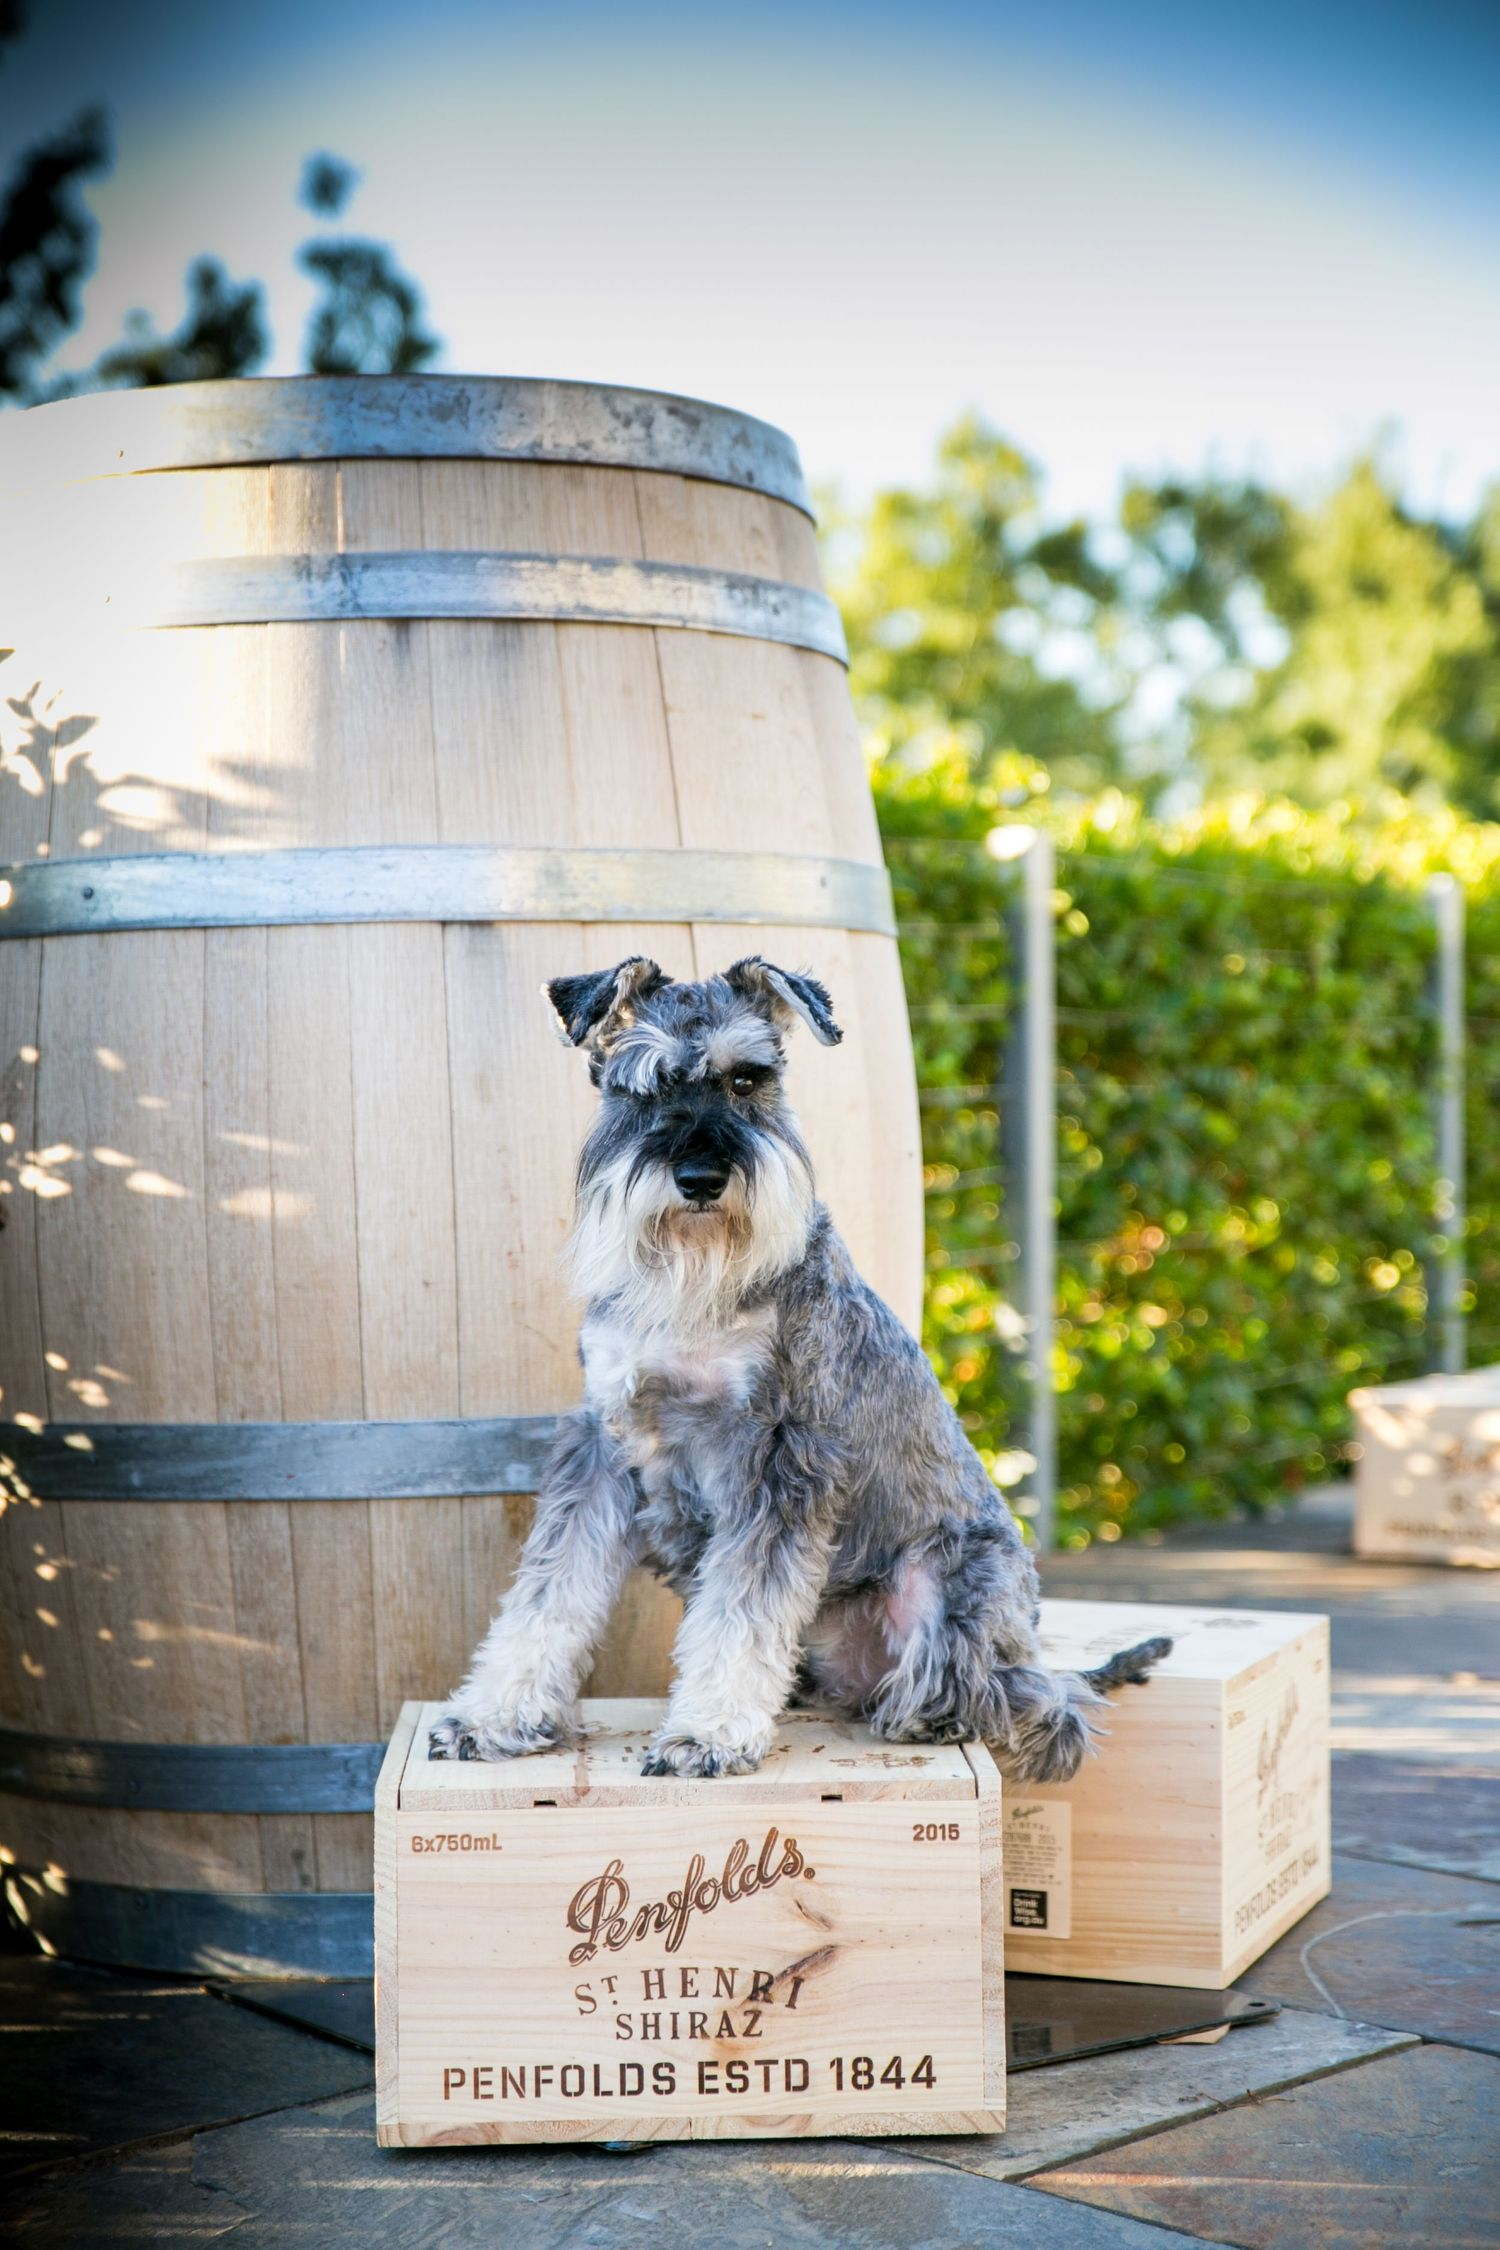 Wine dog posing at Penfolds Winery in Adelaide